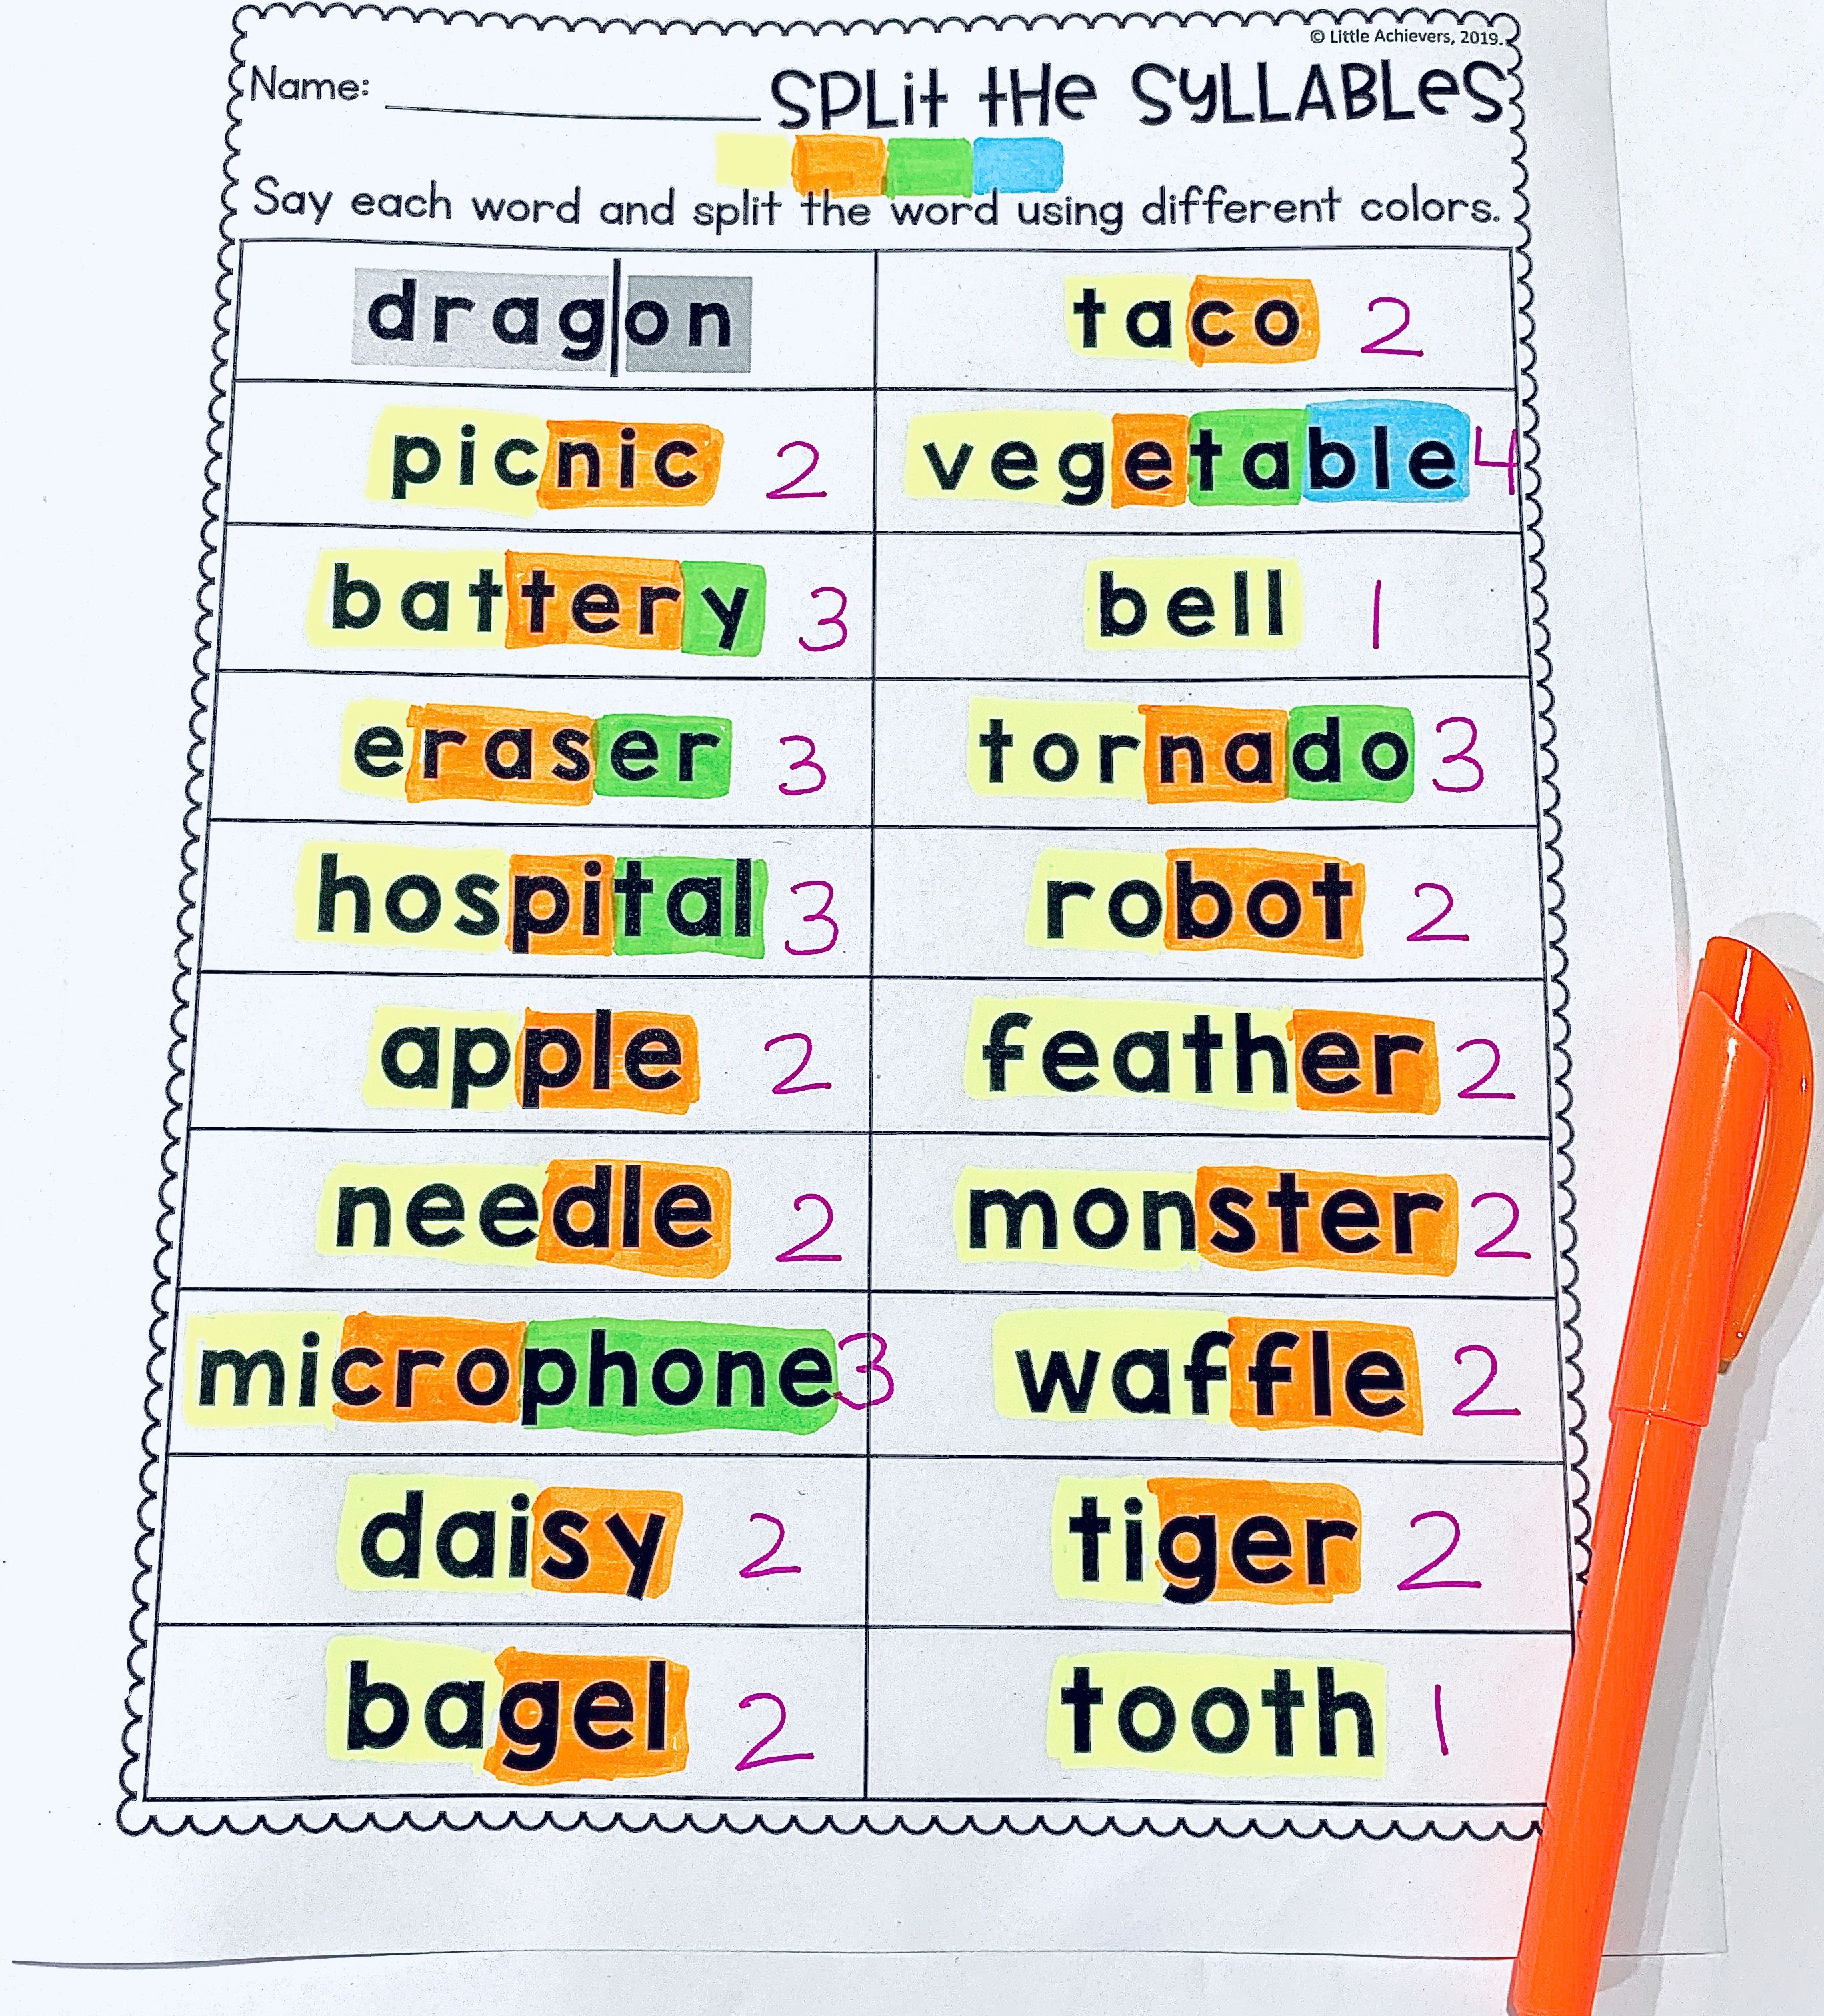 medium resolution of Syllables Worksheets (Counting Syllables Activities)   Syllable worksheet